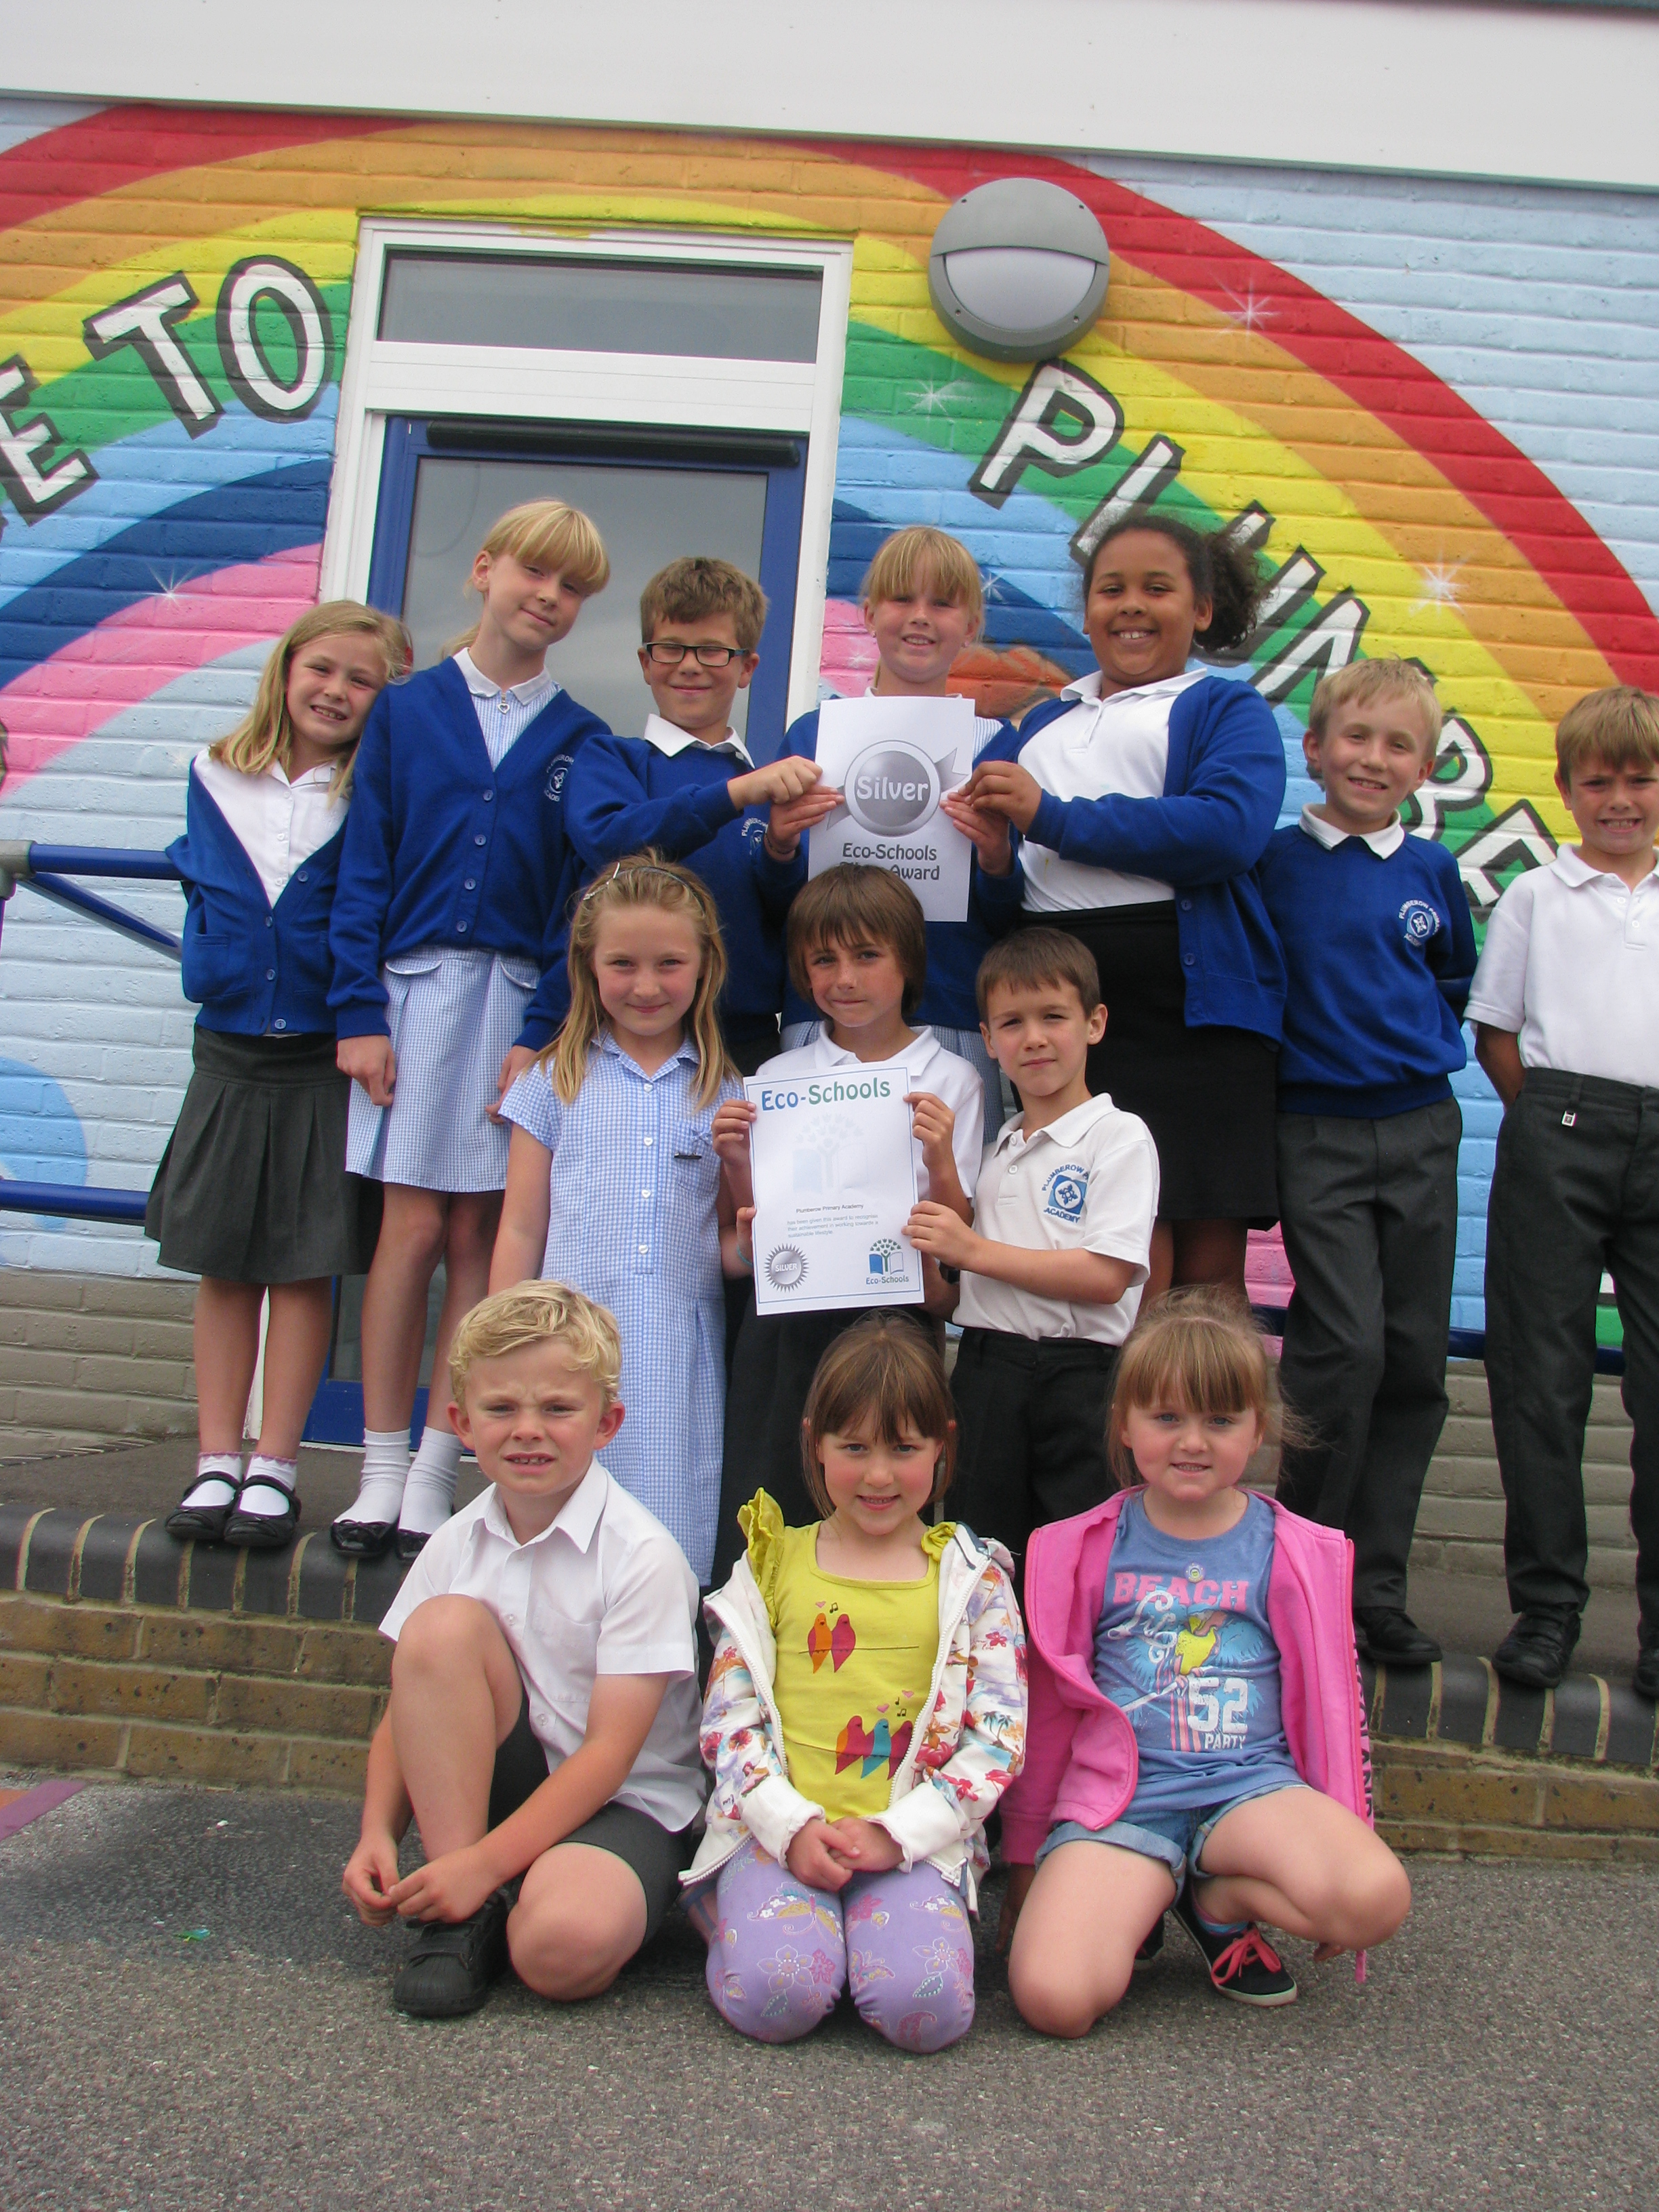 Eco Warriors proudly displaying their 'Silver' Status certificate for the Eco Schools Programme